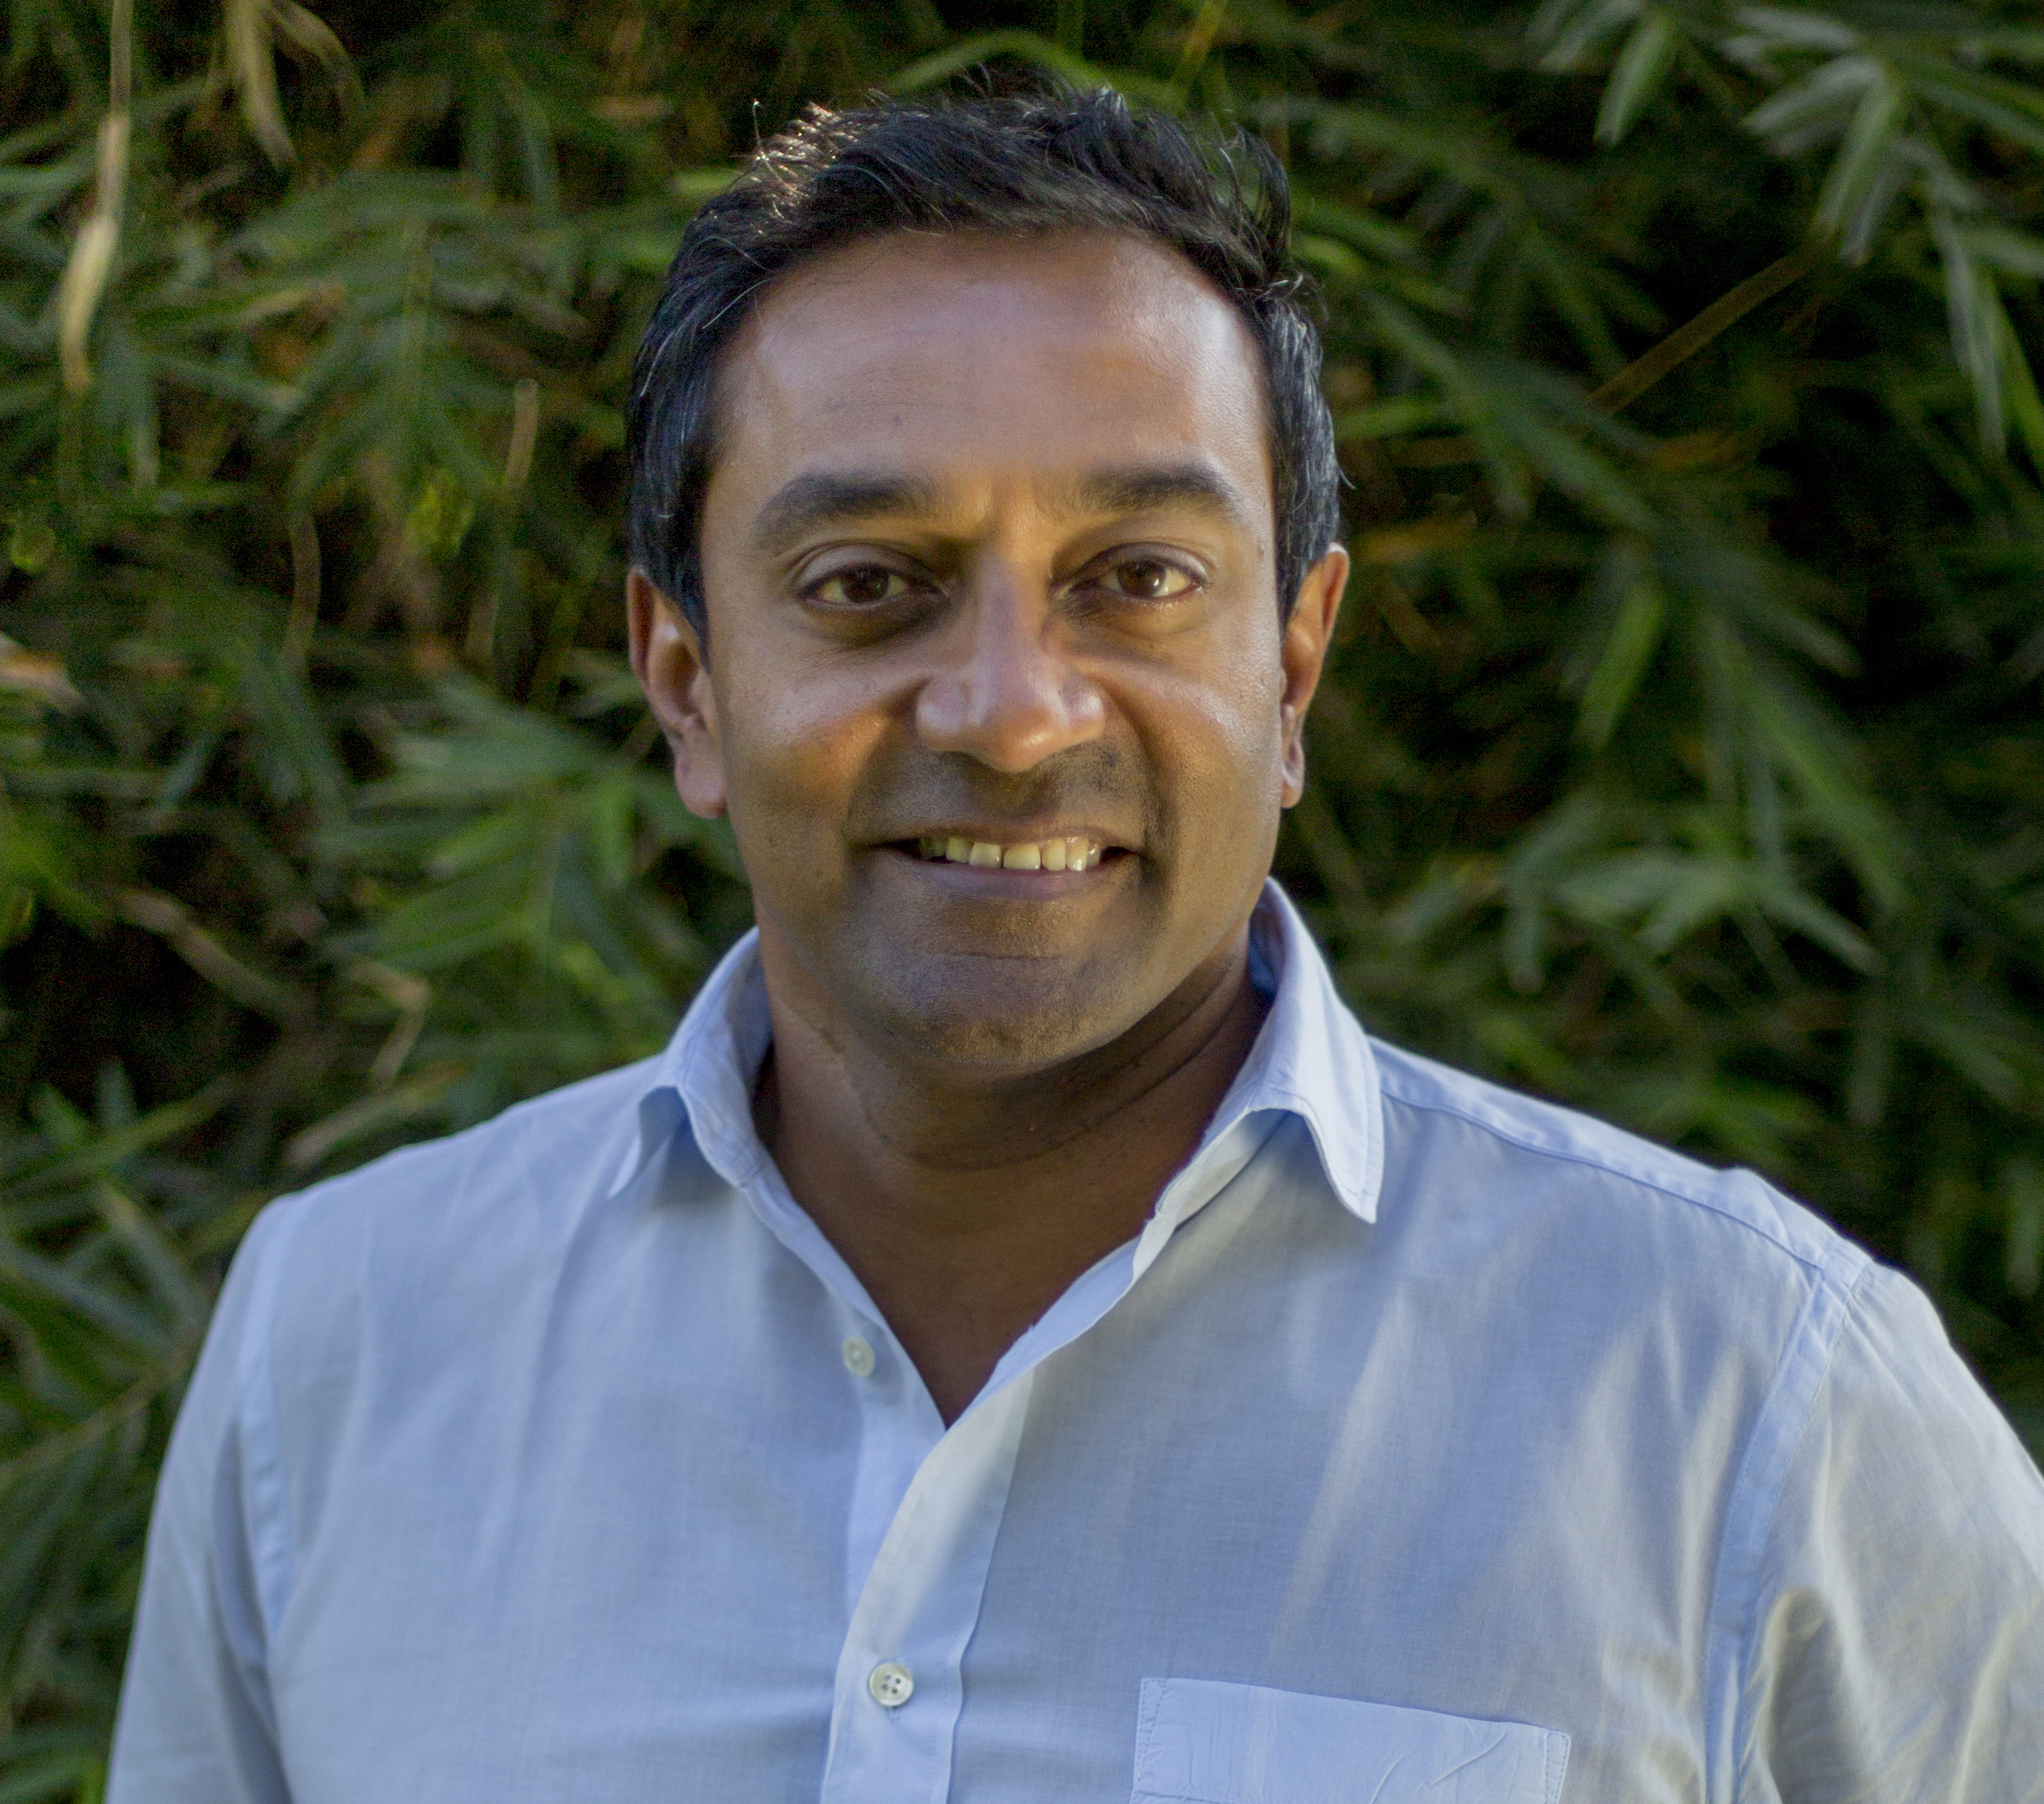 CROPPED_Dr. M. Sanjayan, CEO Conservation International, August 1, 2018. CI CEO M. Sanjayan's portrait taken August 1, 2018 in Nairobi, Kenya.  OFFICIAL SELECT.